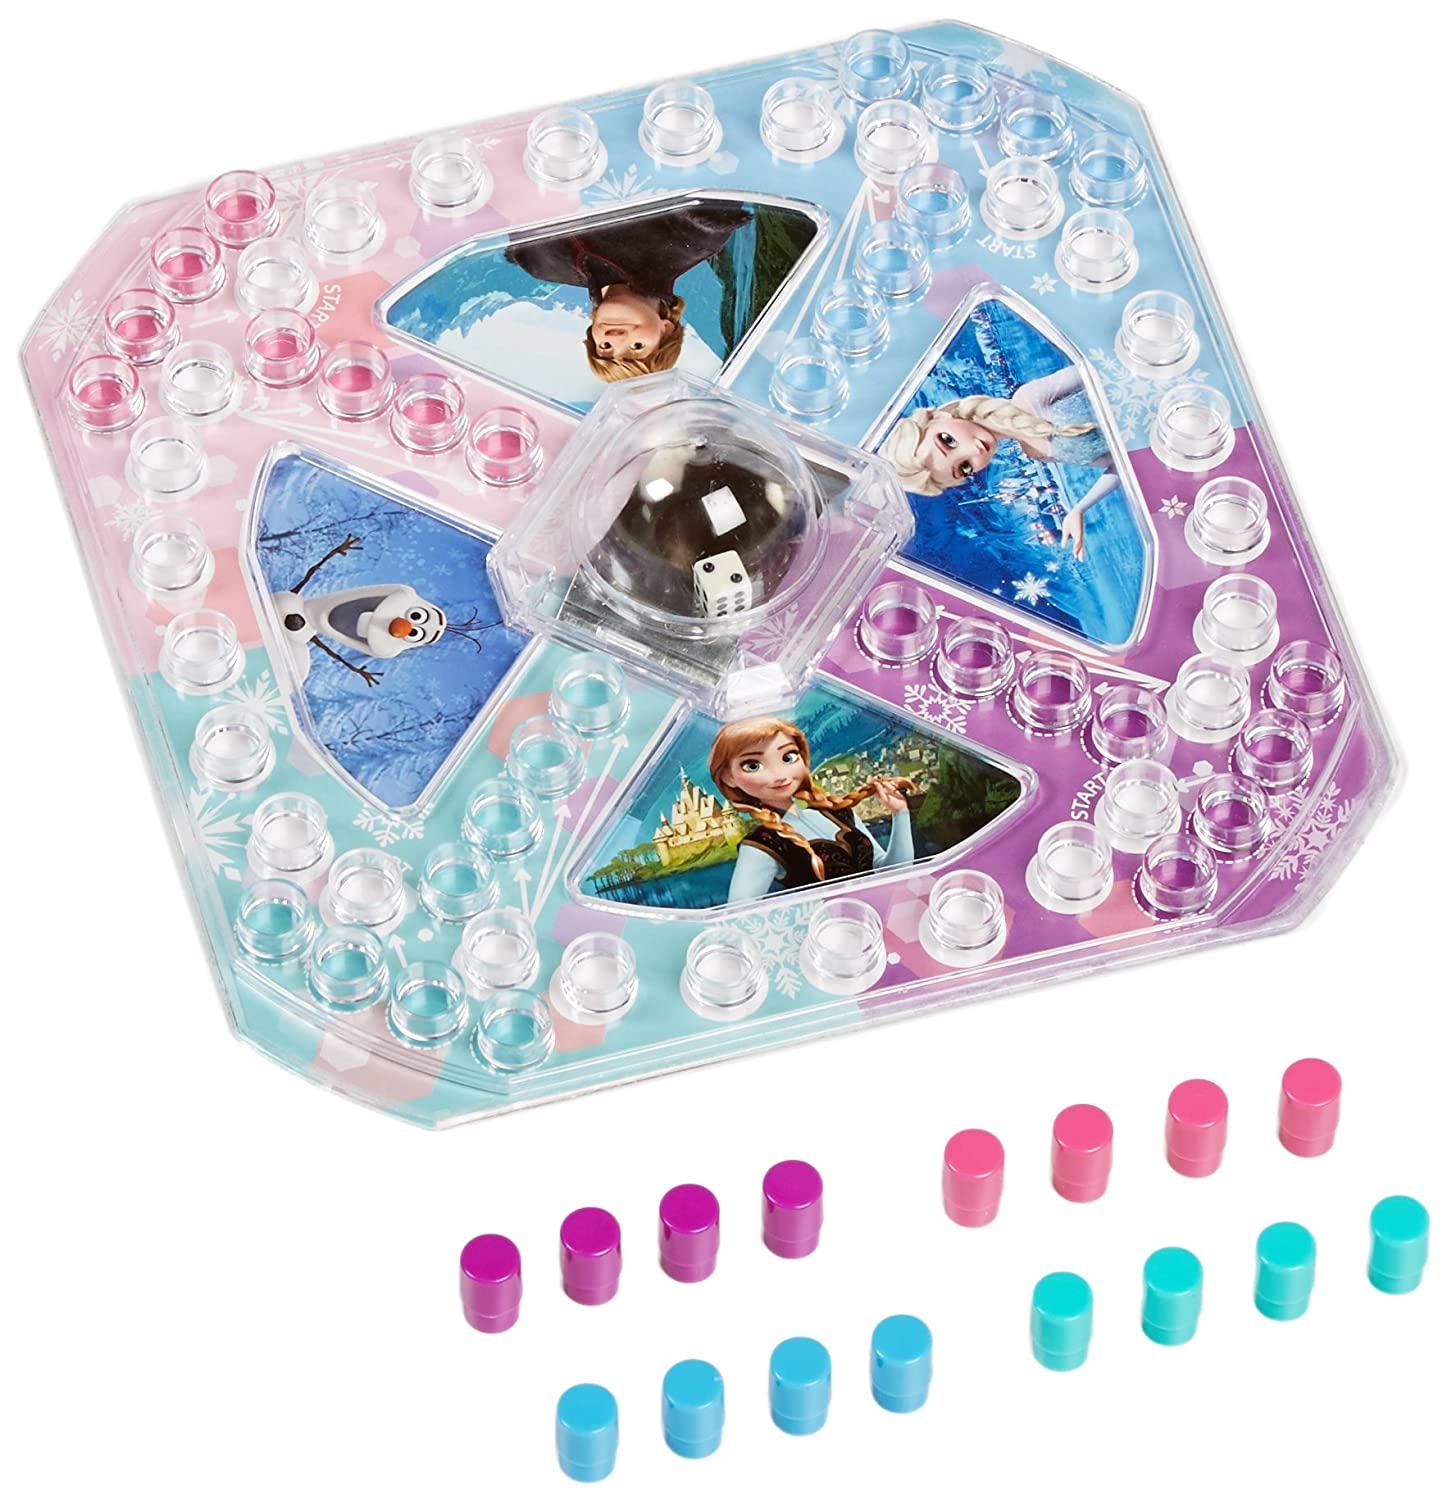 Disney Frozen Pop Up Board Game Styles Will Vary Cardinal Industries 6029920